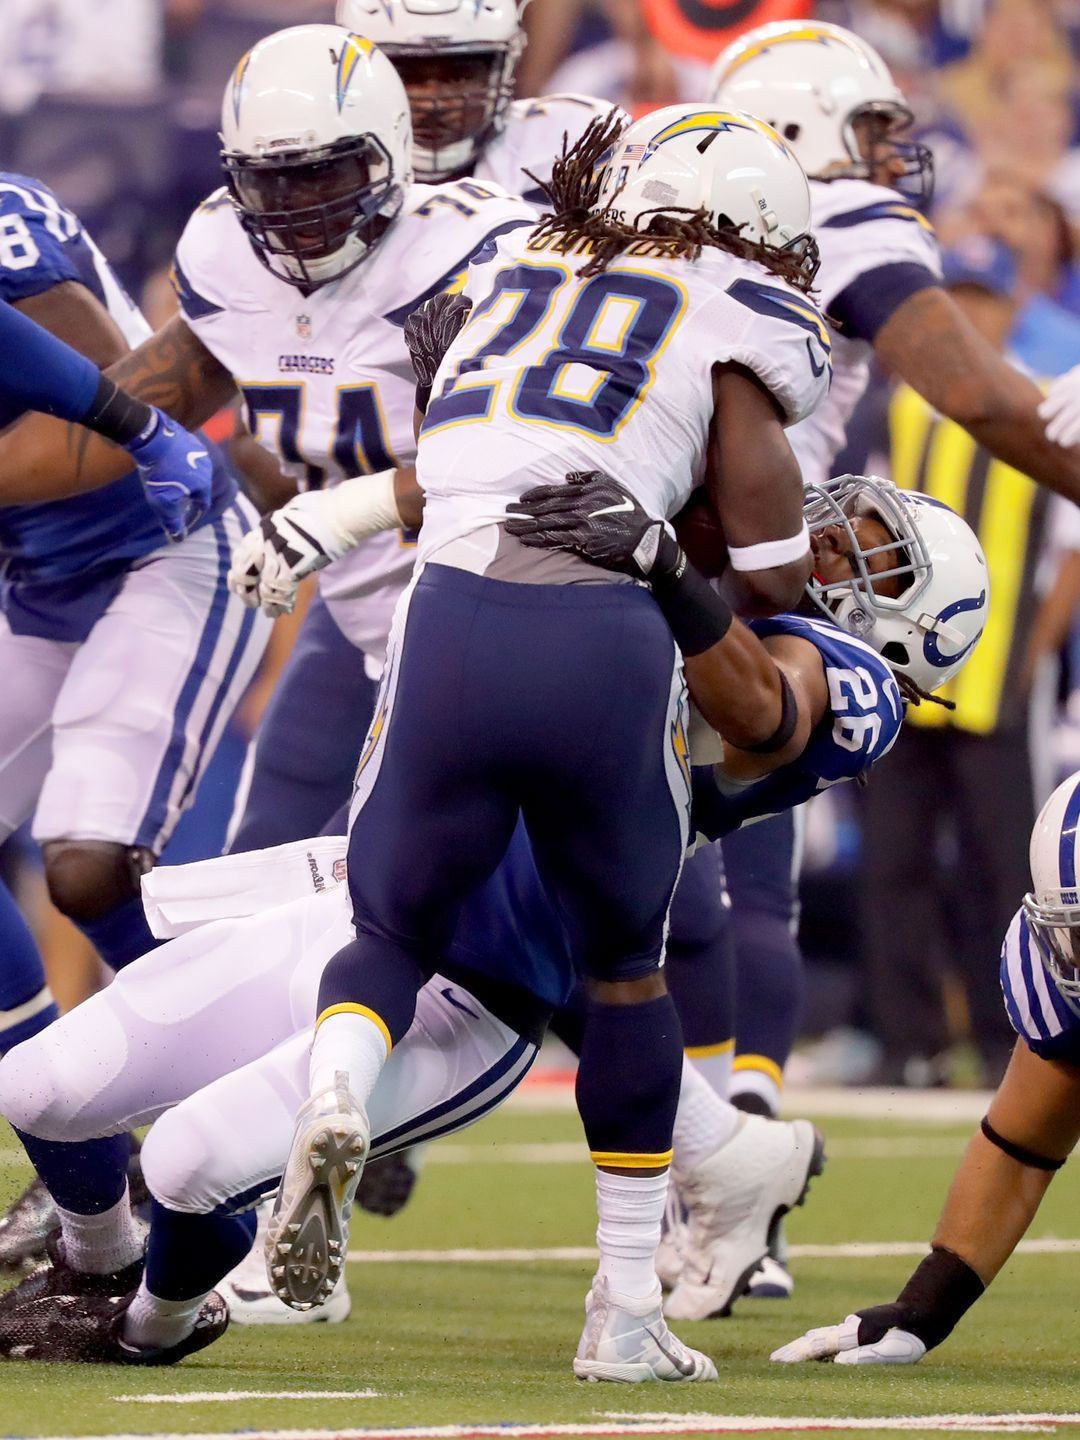 Reaction Colts Earn First Win Of Season In Thriller Vs San Diego Nfl Football Games Lucas Oil Stadium Nfl Football